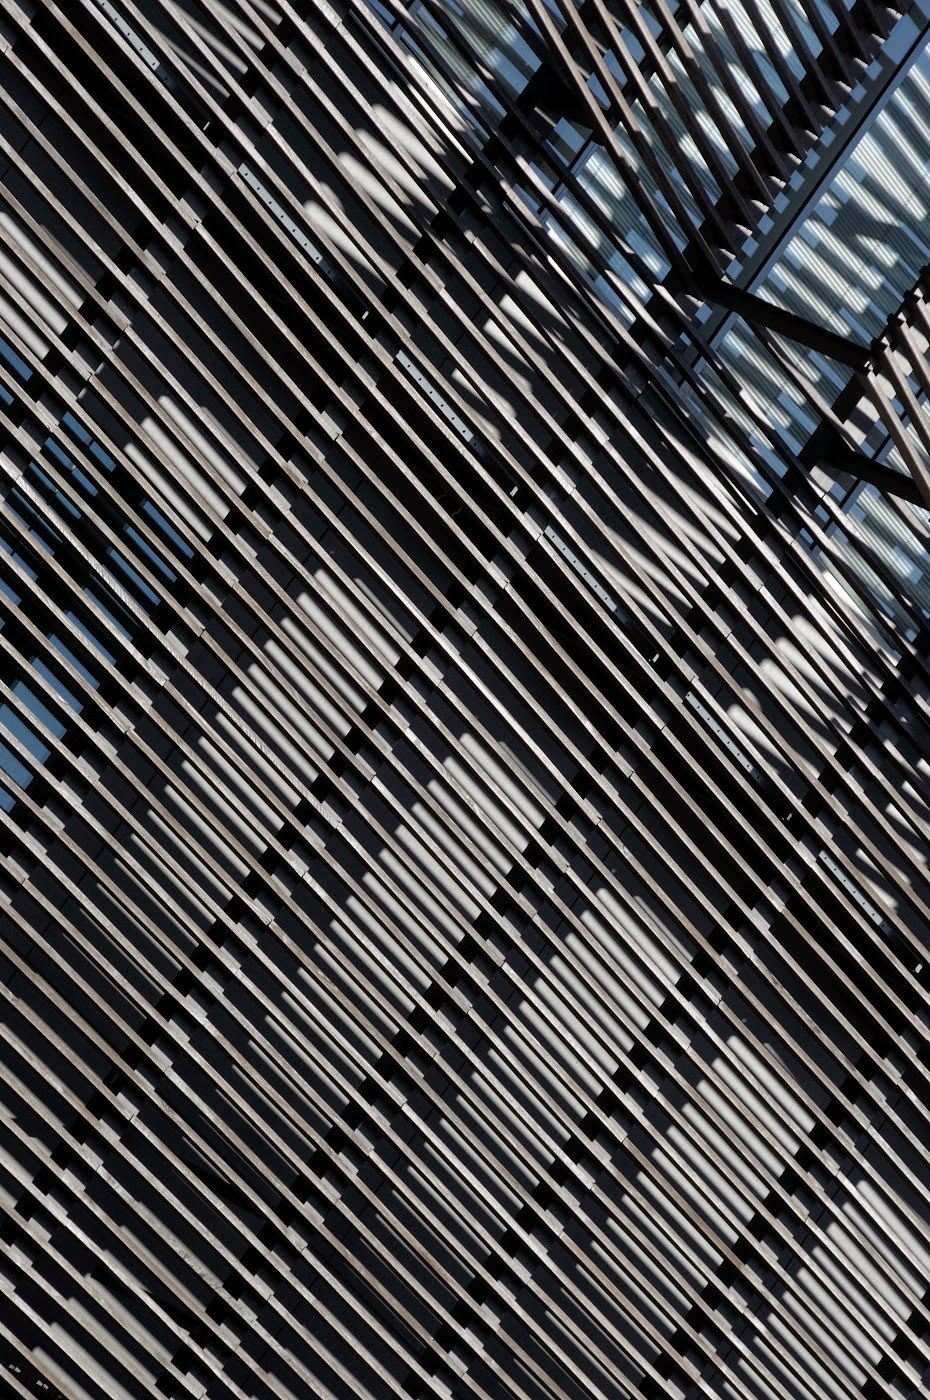 Abstract, abstraction, abstractional, graphic, graphical, detail, postmodern, postmodernist, façade, architecture, architectural, tim Macauley, the light monkey collective, new, stunning, amazing, I now know what it's like to live in a jukebox, Australia, Australian, goma, gallery of modern art, Brisbane, architectus